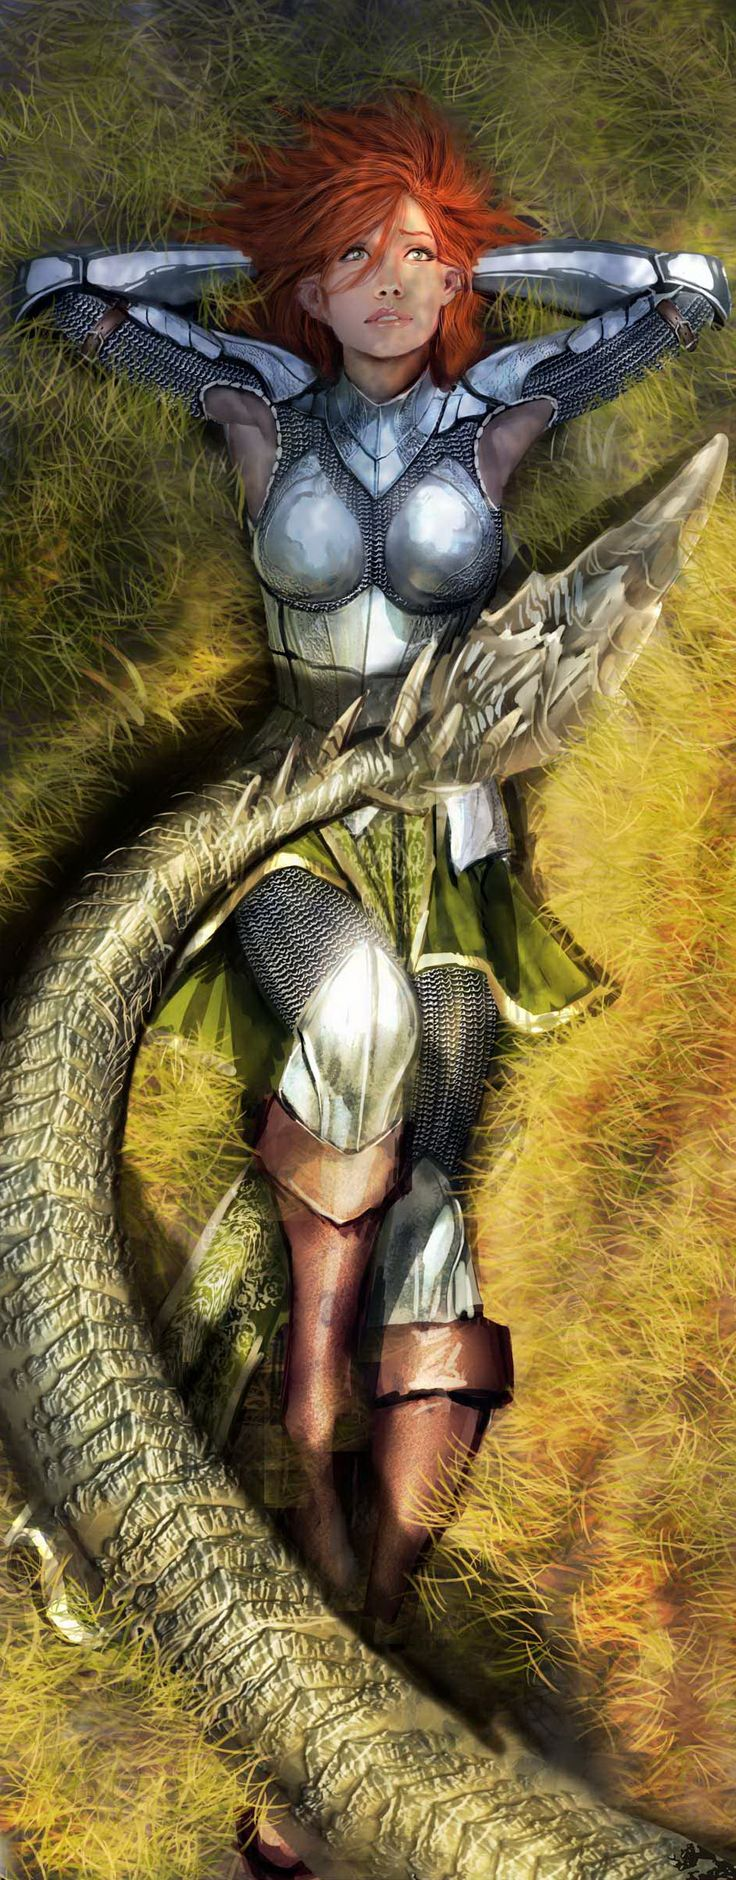 Always thought a high tech rider with a leather saddle on a dragon was an interesting concept